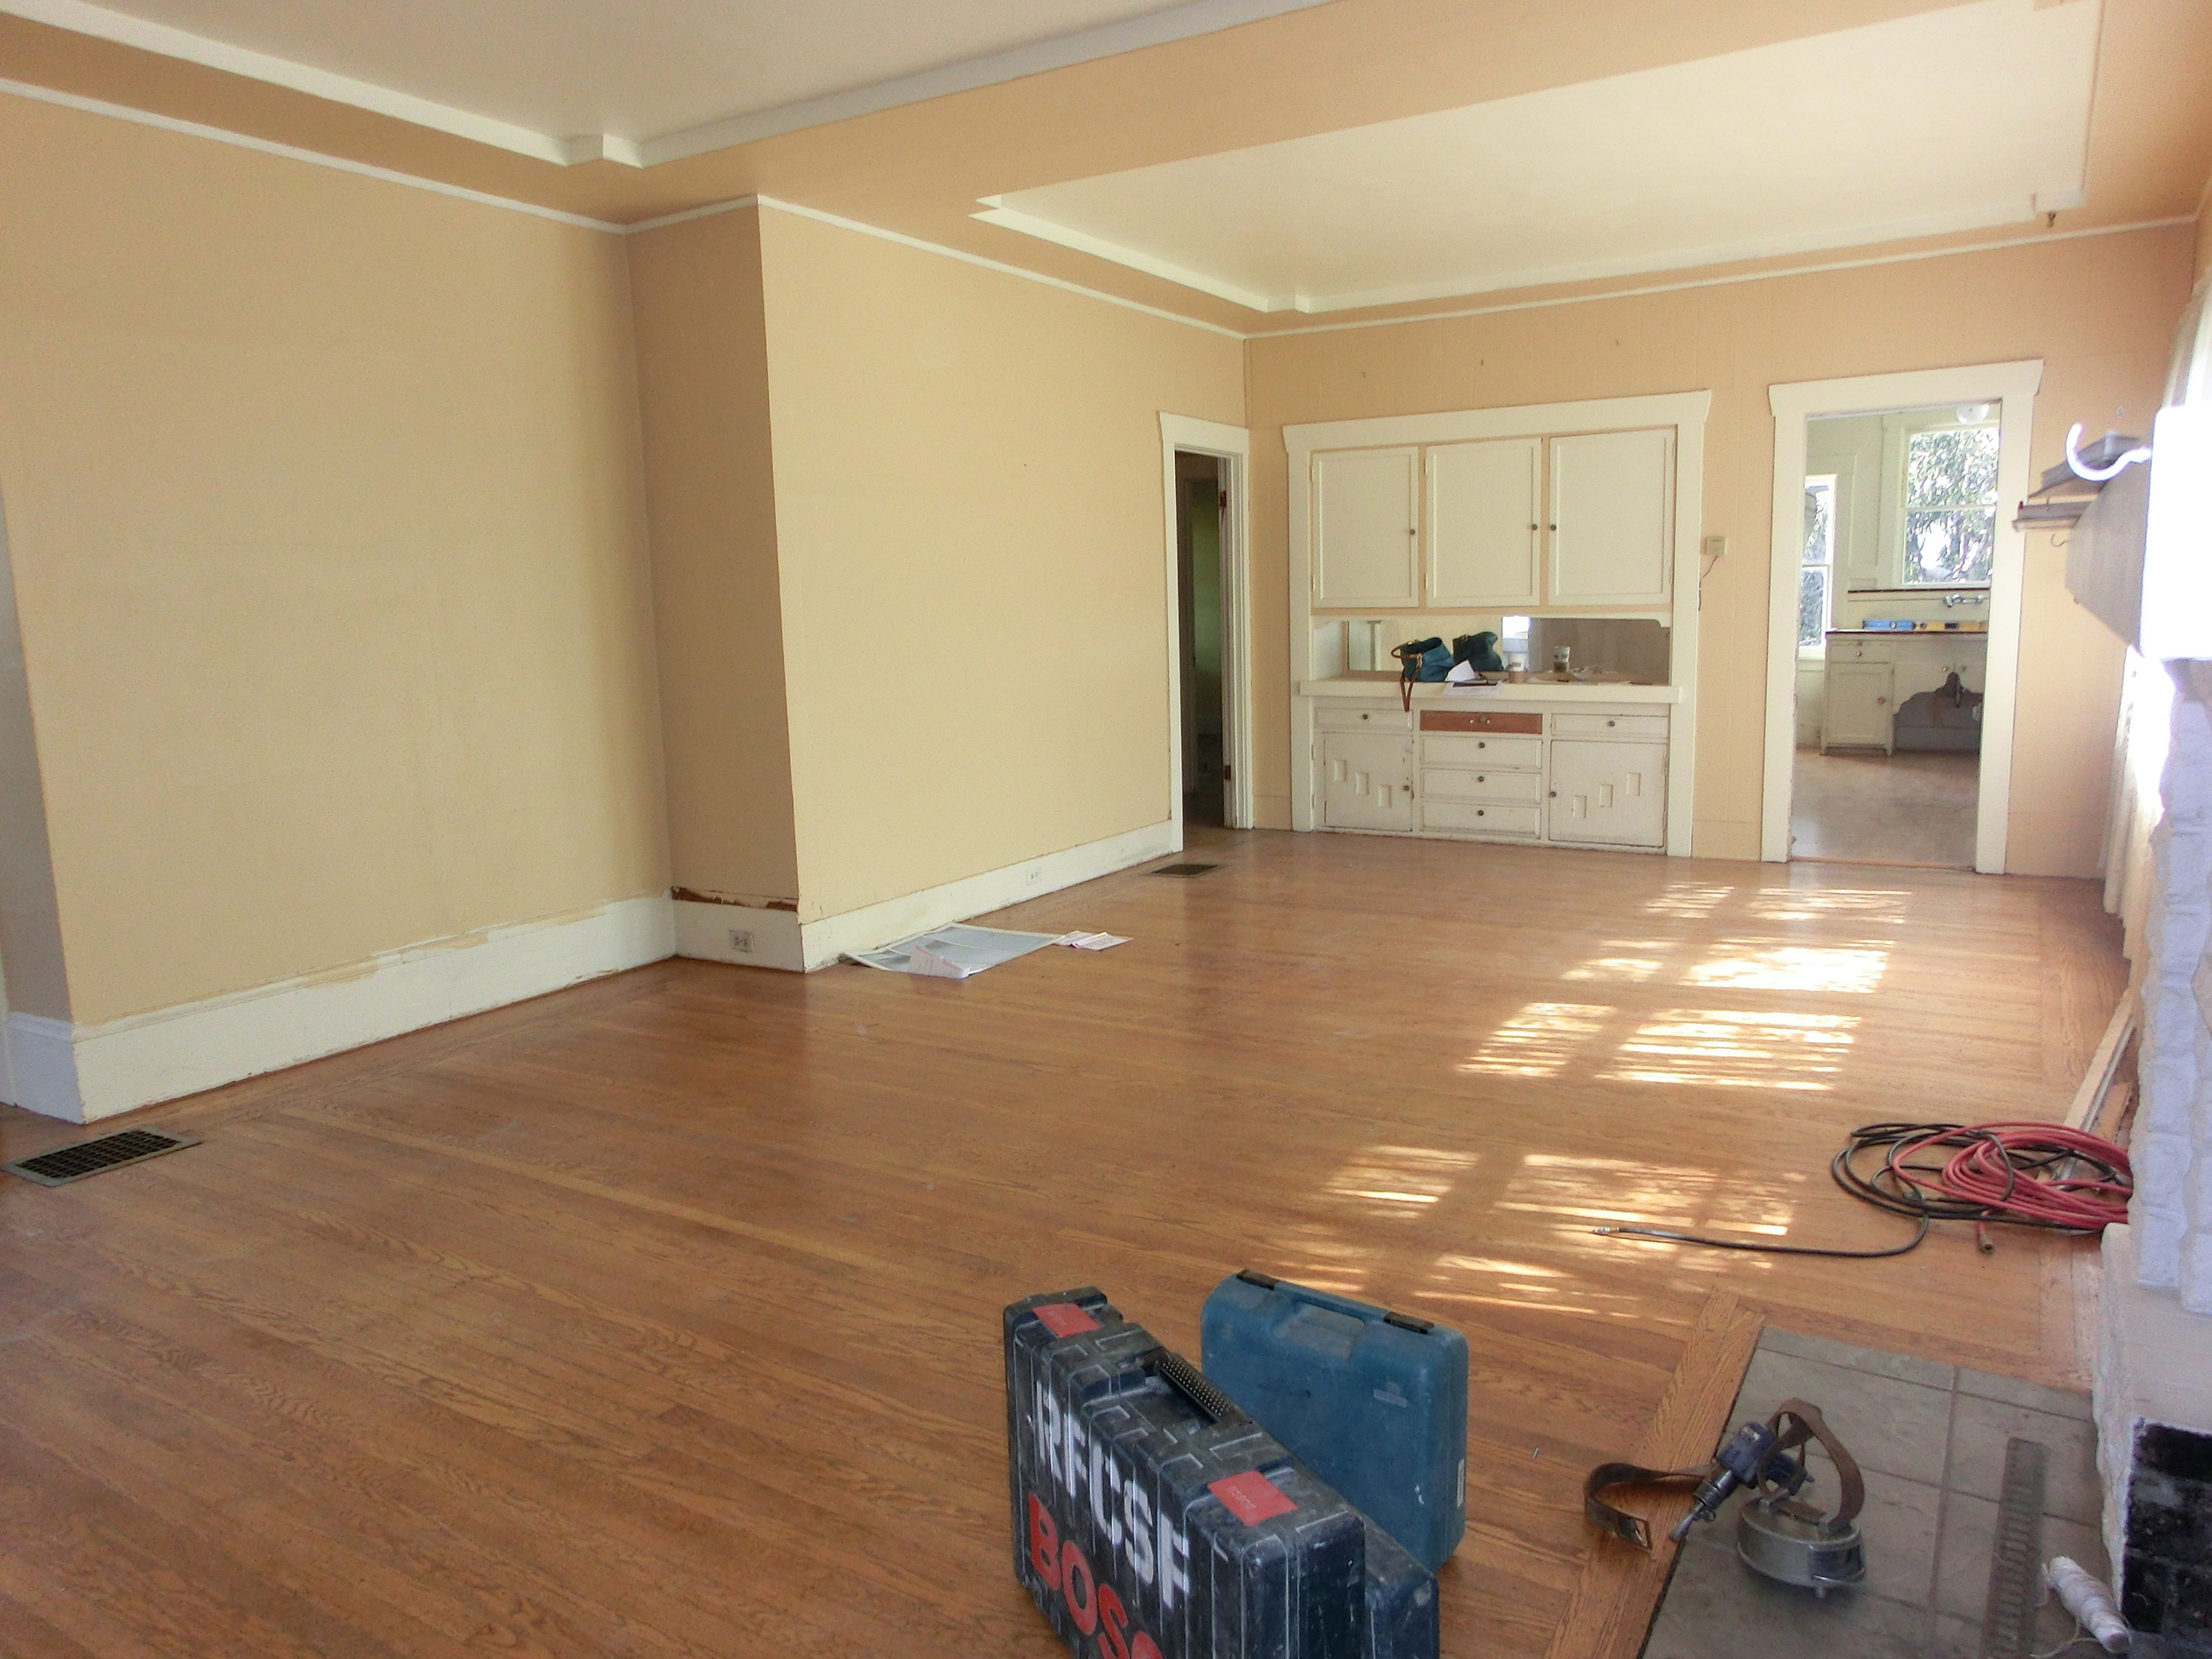 before and after kitchen renovation in glenview, oakland ca